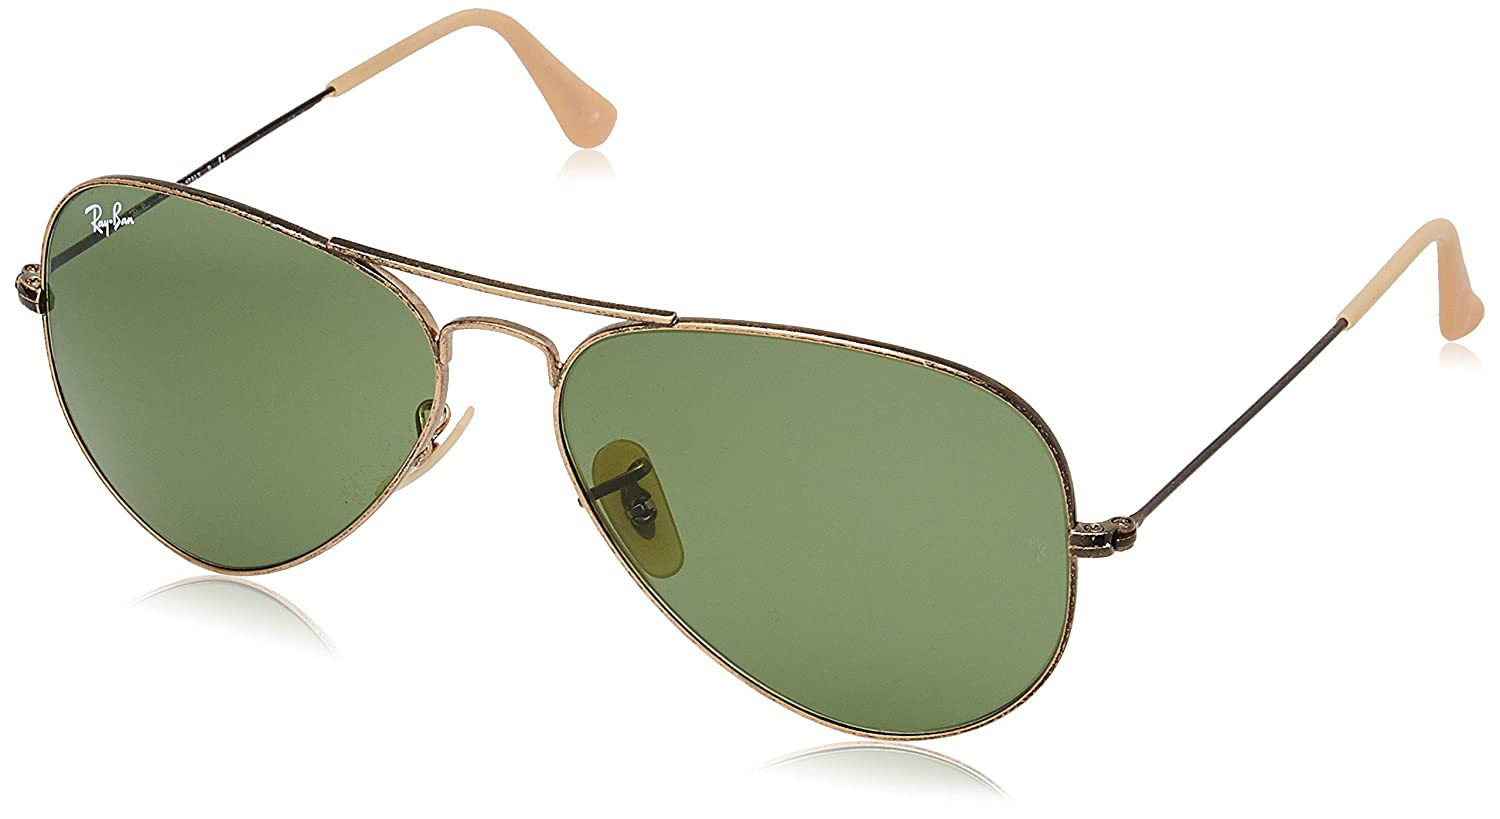 09404dc2fe0b7 Amazon.com  Ray-Ban AVIATOR LARGE METAL - ANTIQUE GOLD Frame GREEN Lenses  58mm Non-Polarized  Clothing